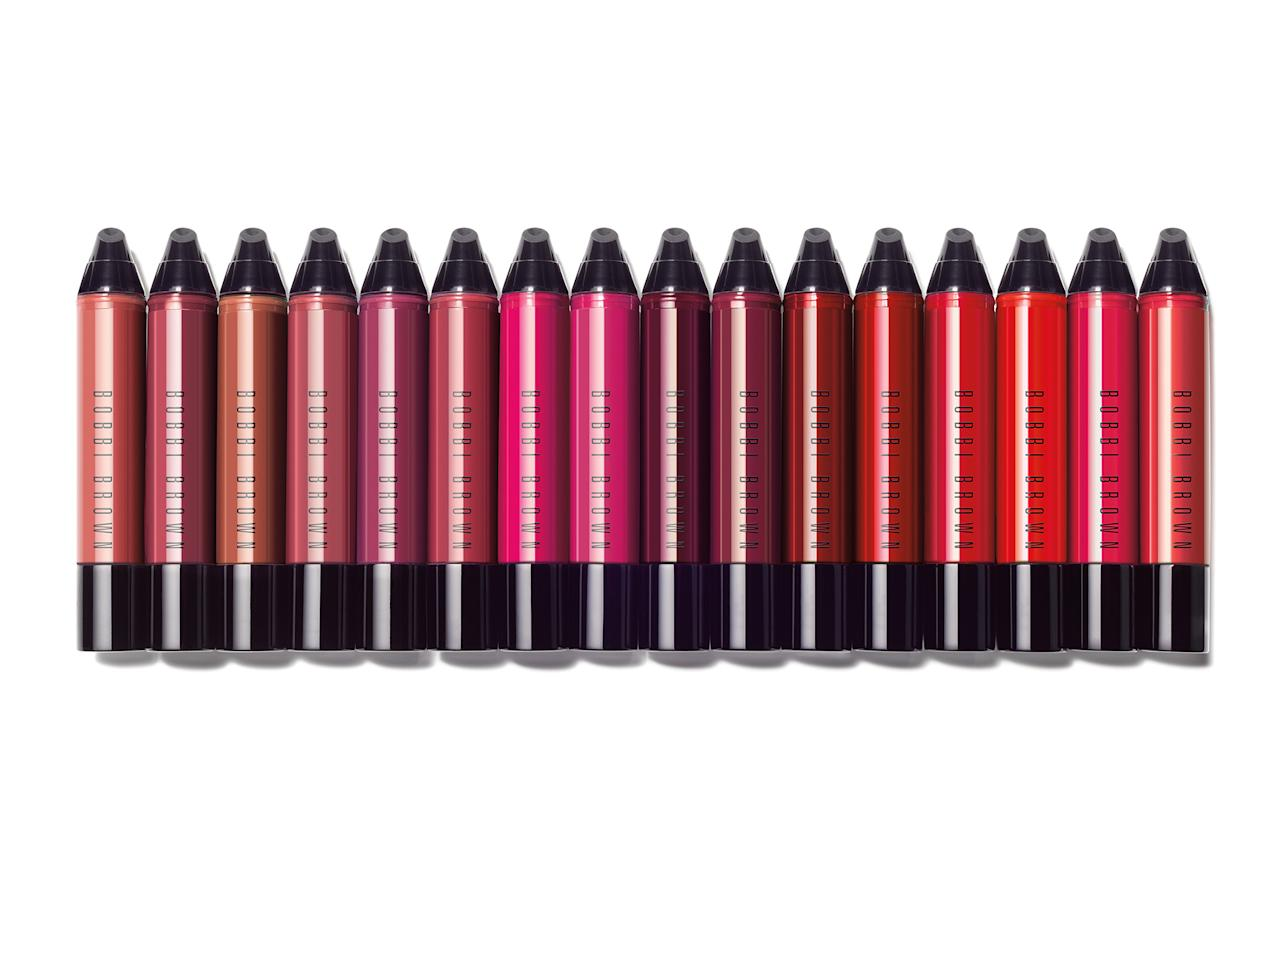 """<p>These cushiony art sticks pack a powerful punch of color that dry down to a nonsticky creamy finish that lasts for hours. They also add a swipe of moisture to your lips to keep them from getting chapped and rough. (<a rel=""""nofollow"""" href=""""https://www.bobbibrowncosmetics.com/product/14460/47375/new/art-stick-liquid-lip/ss17"""">$28</a>, bobbibrowncosmetics.com) (Photo: Bobbi Brown) </p>"""